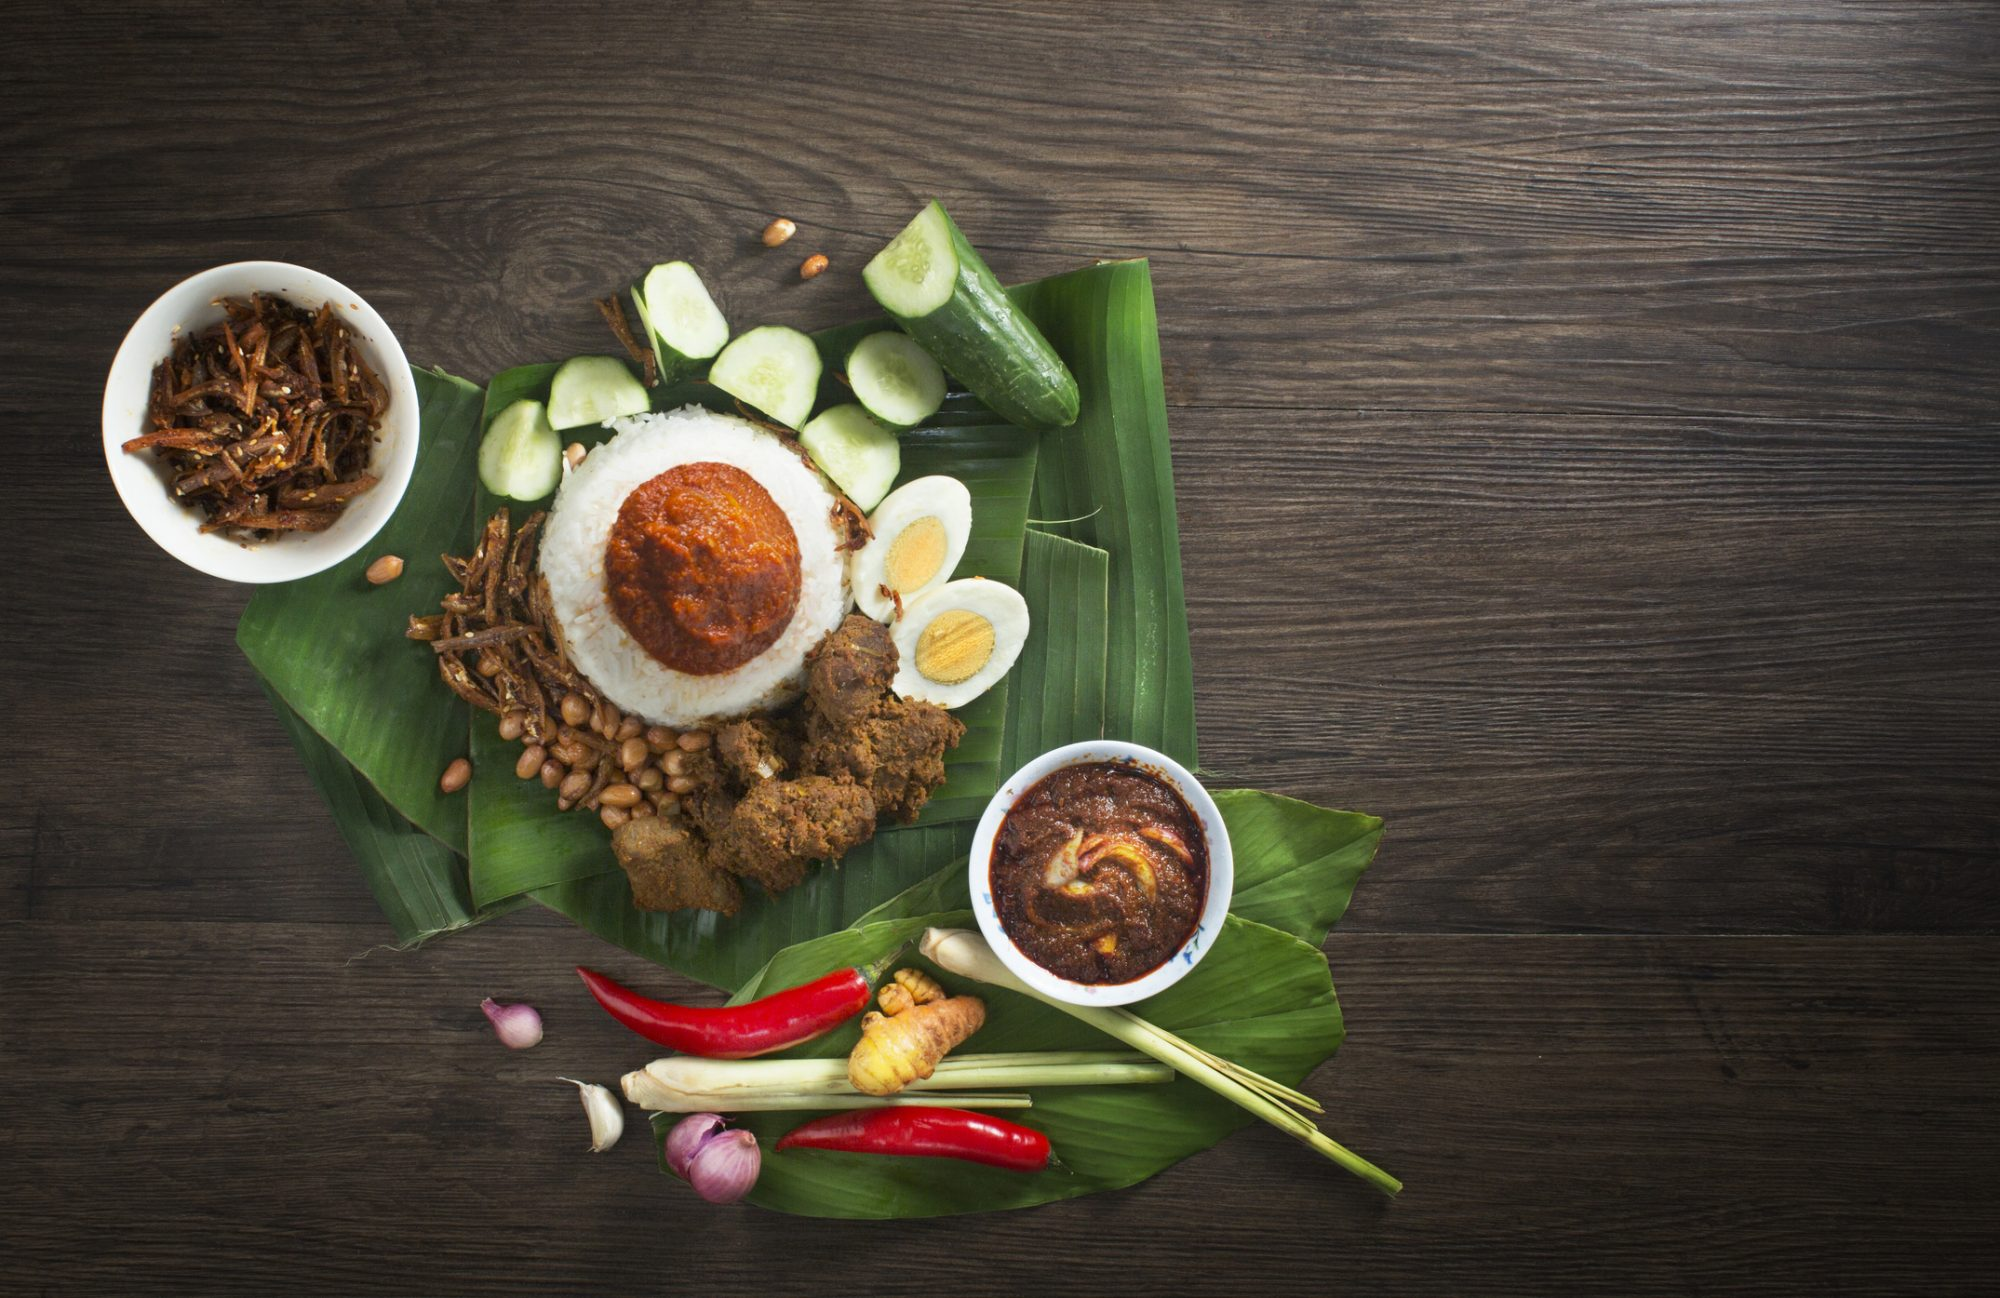 "Malaysia traditional food ""Nasi lemak"" and ingredients on rustic wooden table top."